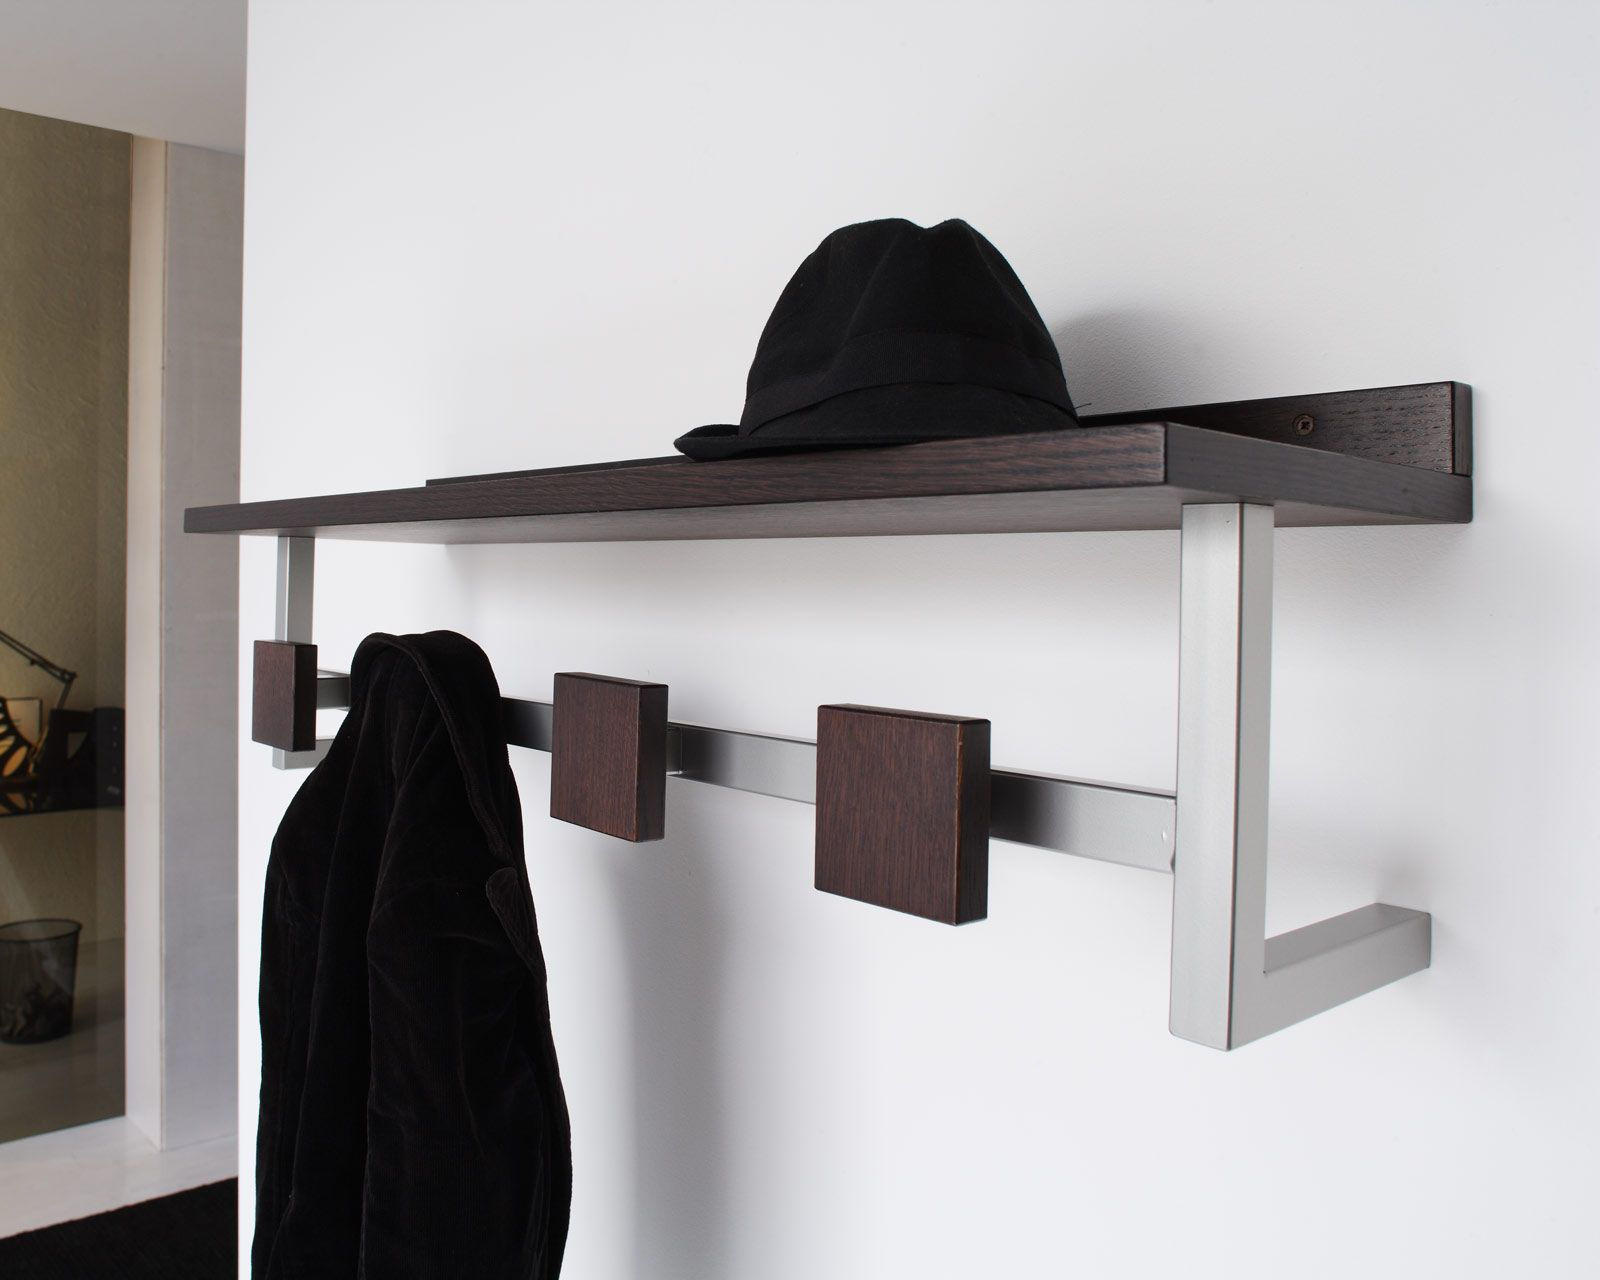 mud tidy iron and or forged hardware coat in with coats hand room four entryway hats spanish keep shelf multiple bpc hooks rack bedroom your